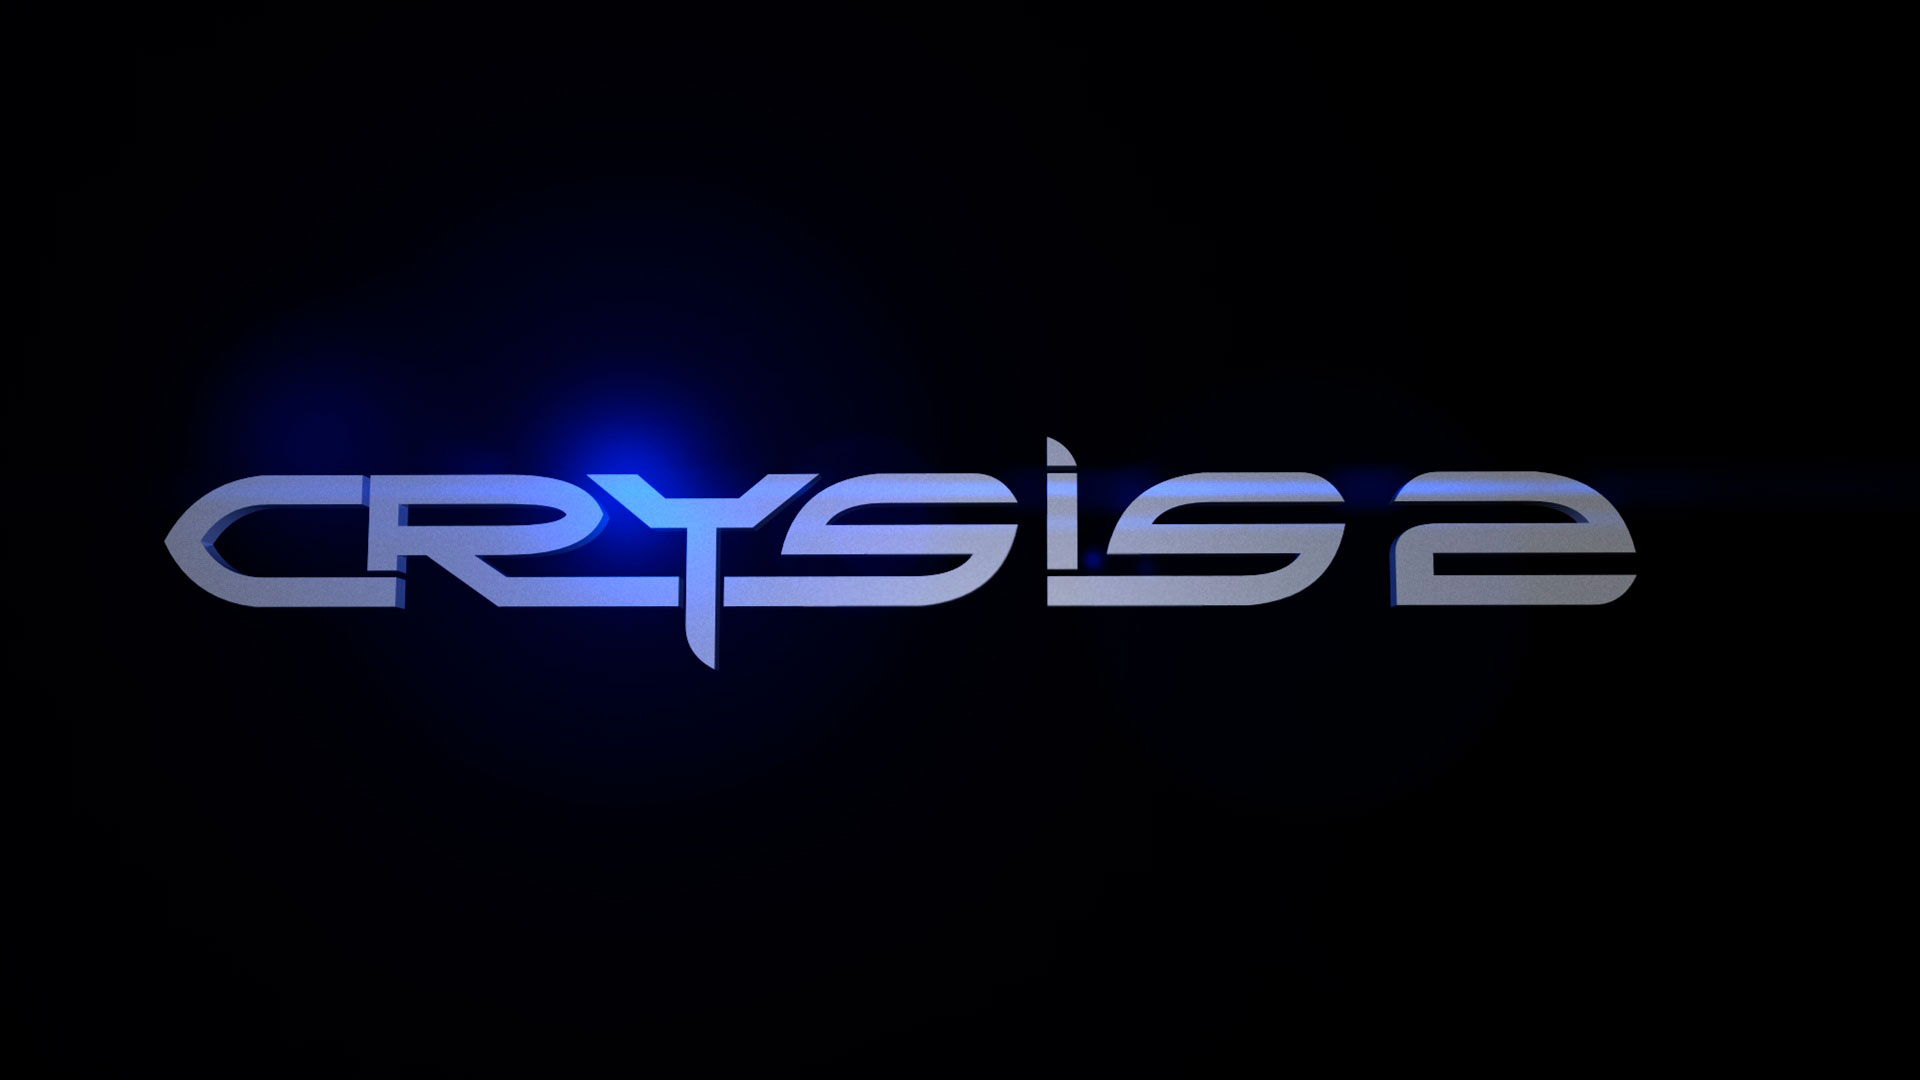 Crysis 2 Wallpapers in HD 1920x1080